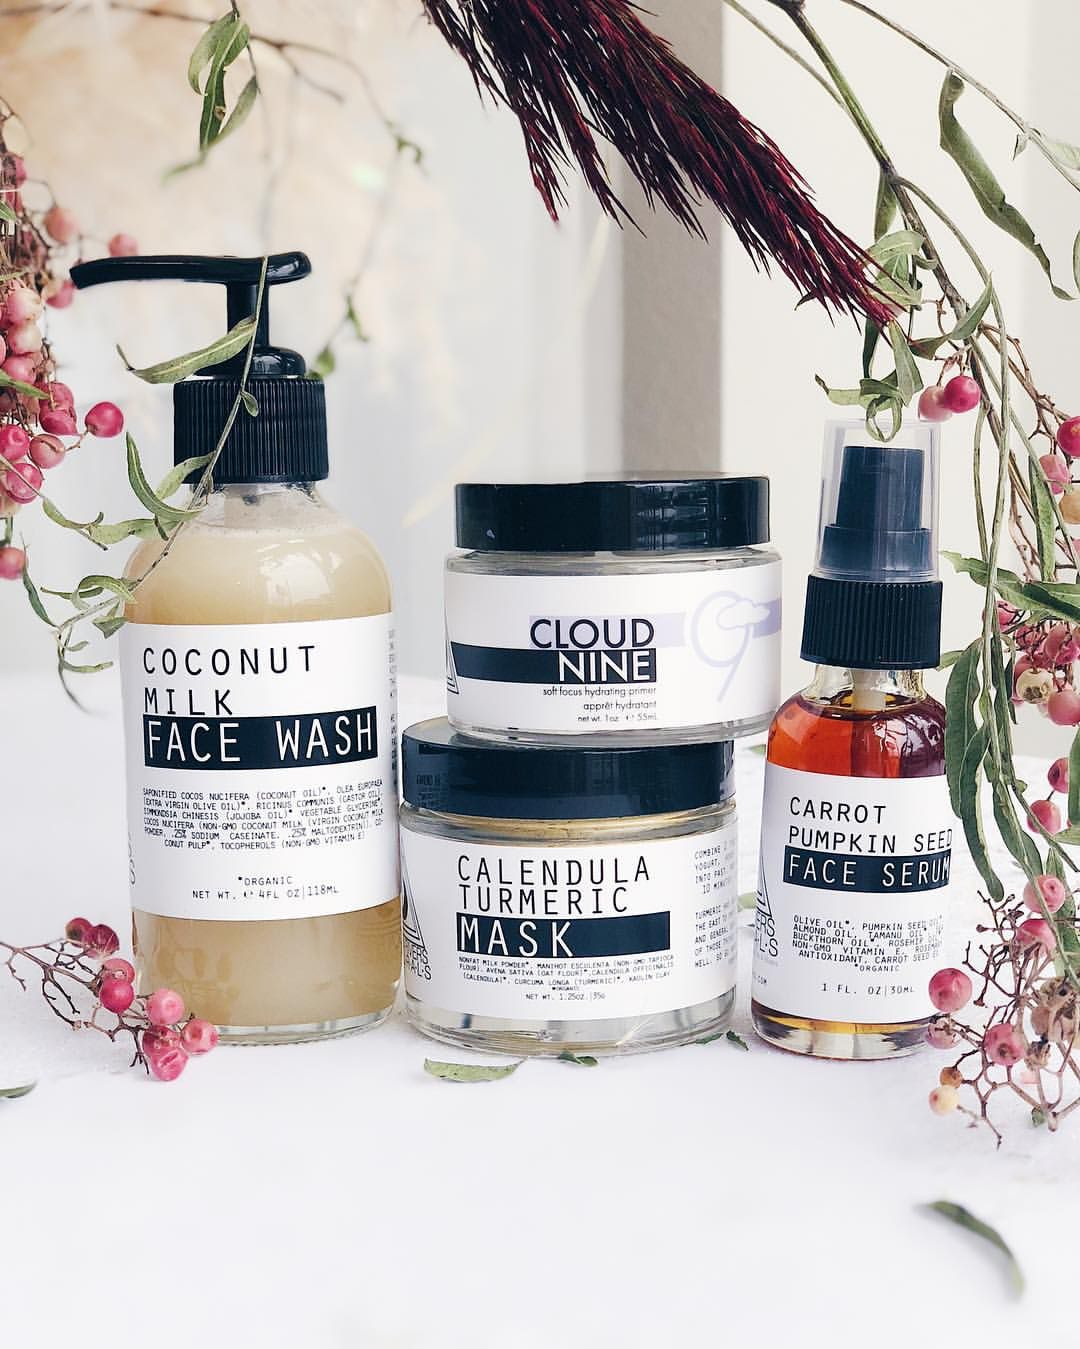 Natural Skin Care Products Moon Rivers Naturals Organic Face Products Organic Skin Care Milk Face Wash